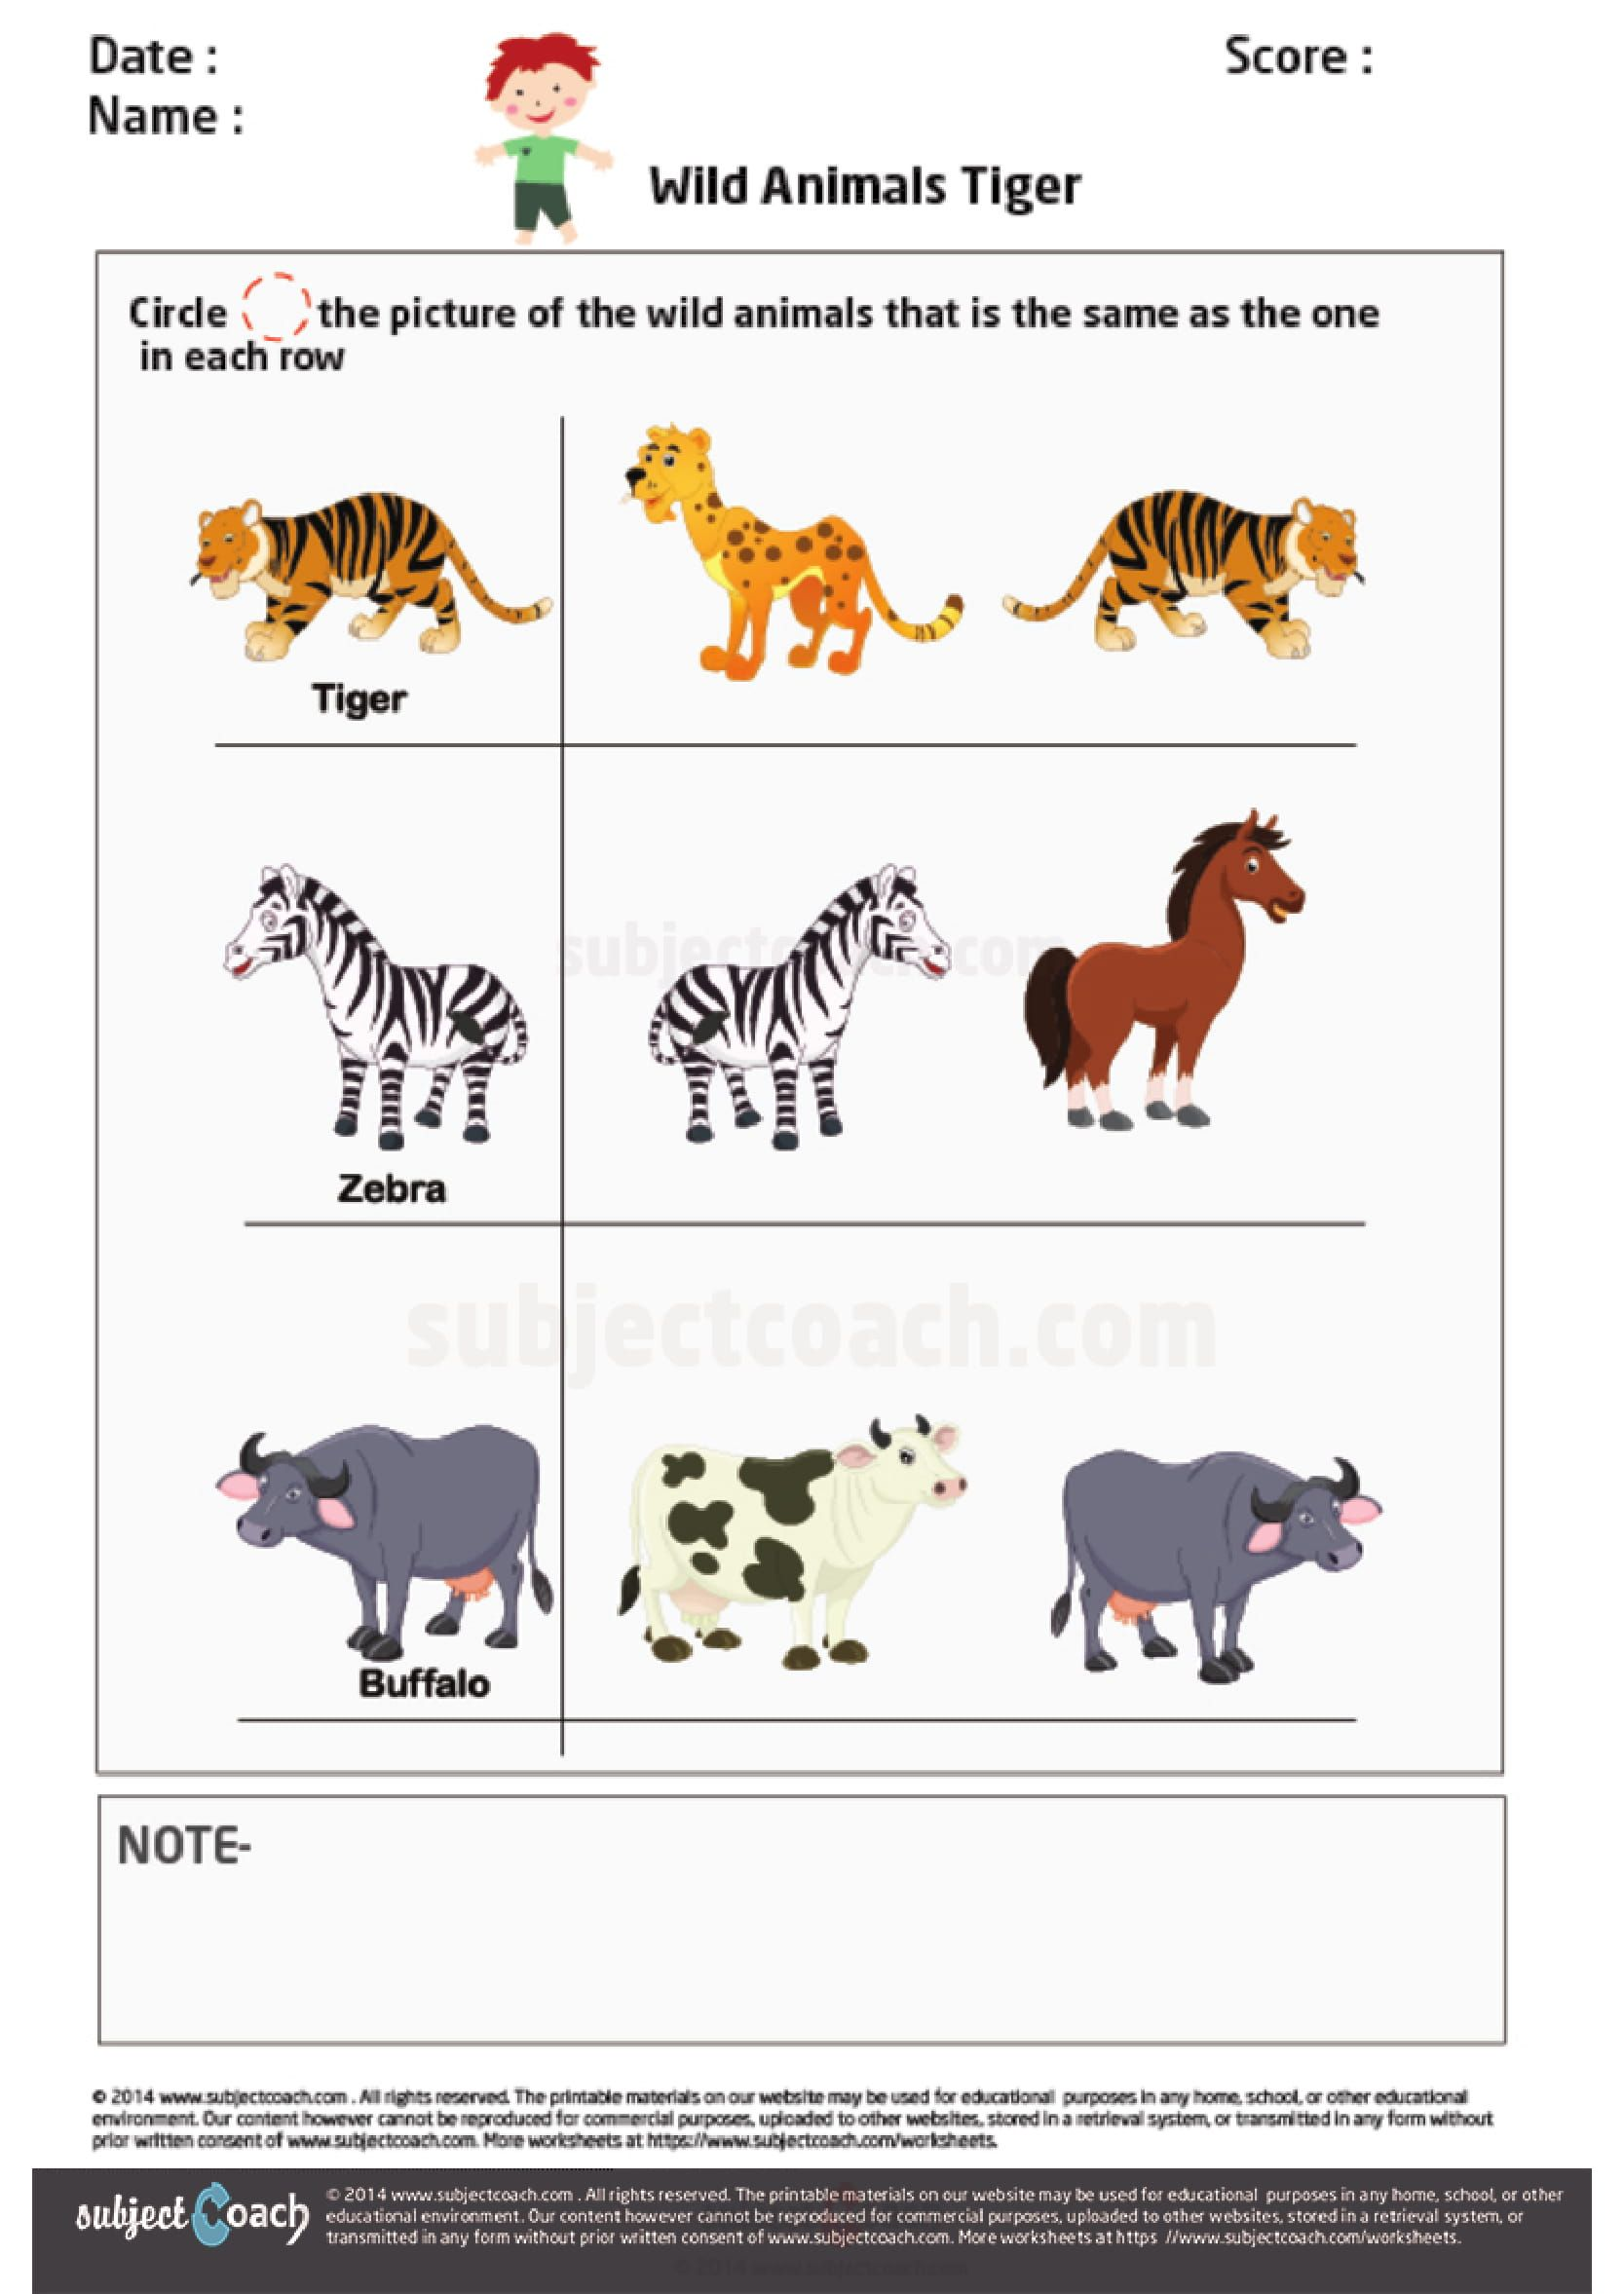 Worksheet Wild Animals Tiger Circle The Picture Of The Wild Animals That Is The Same As The One In Each Row Want To P Science Worksheets Worksheets Free Math [ 2355 x 1667 Pixel ]